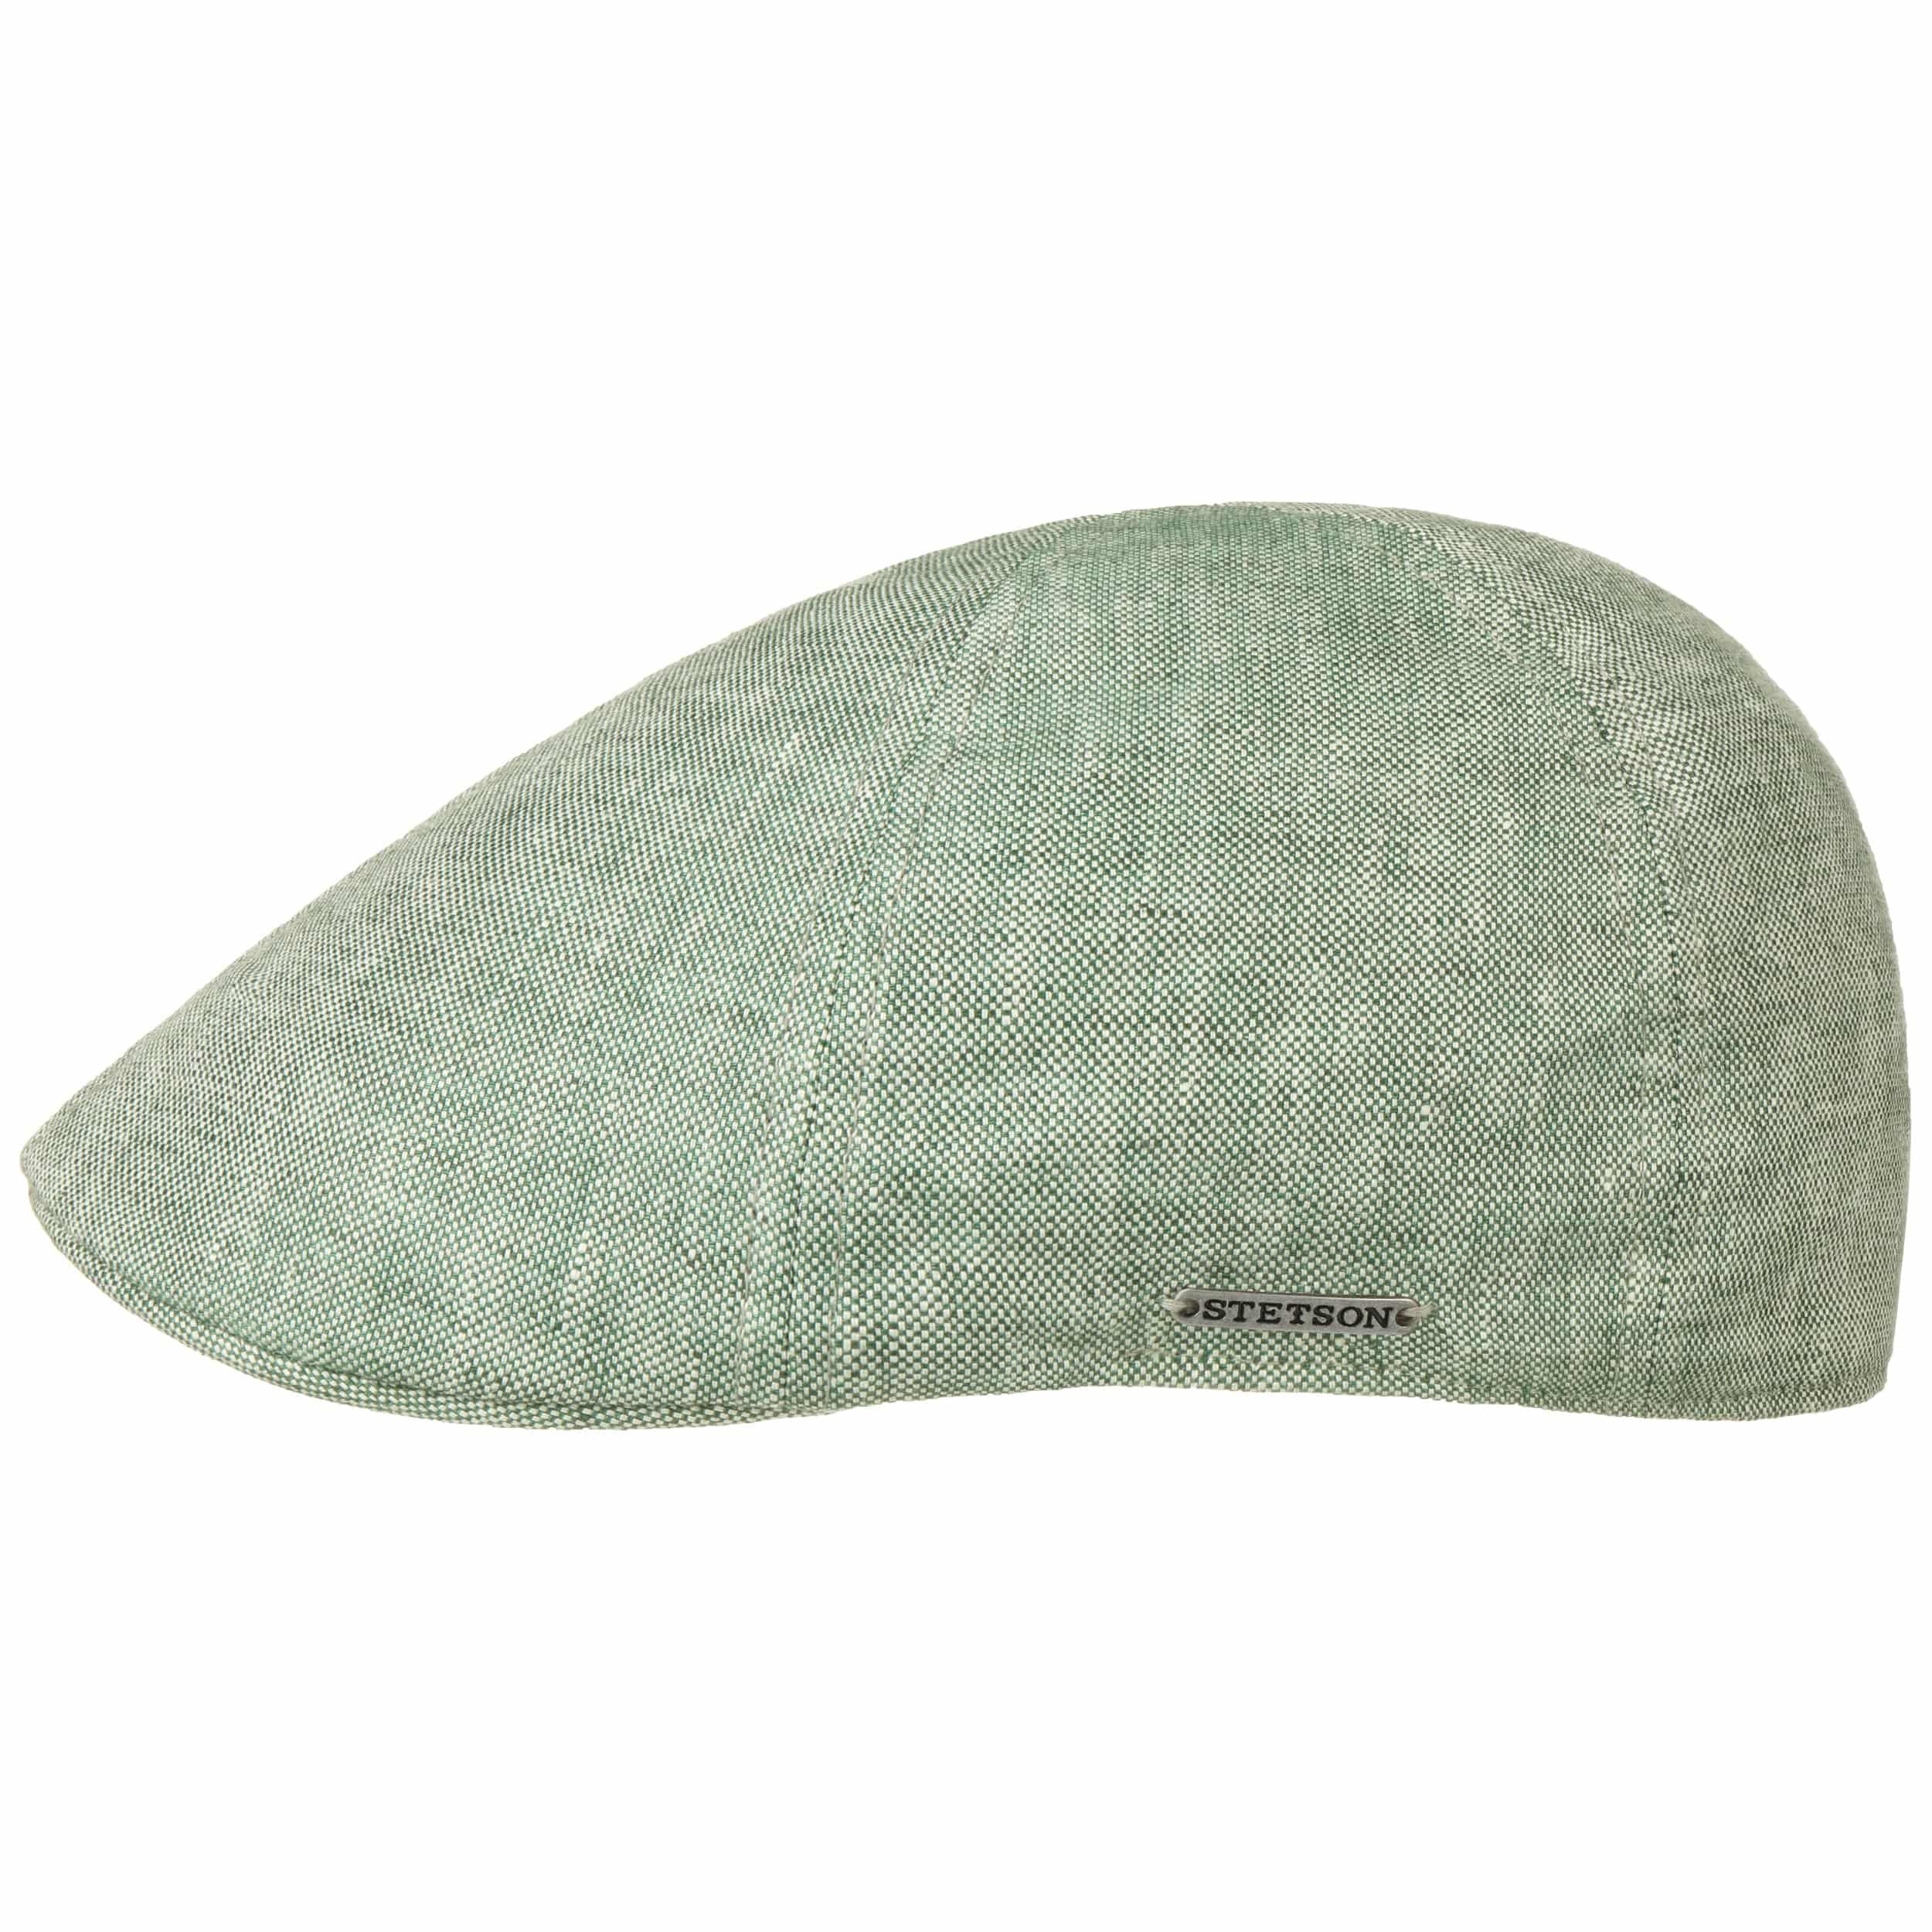 Texas Just Linen Pet mintgroen